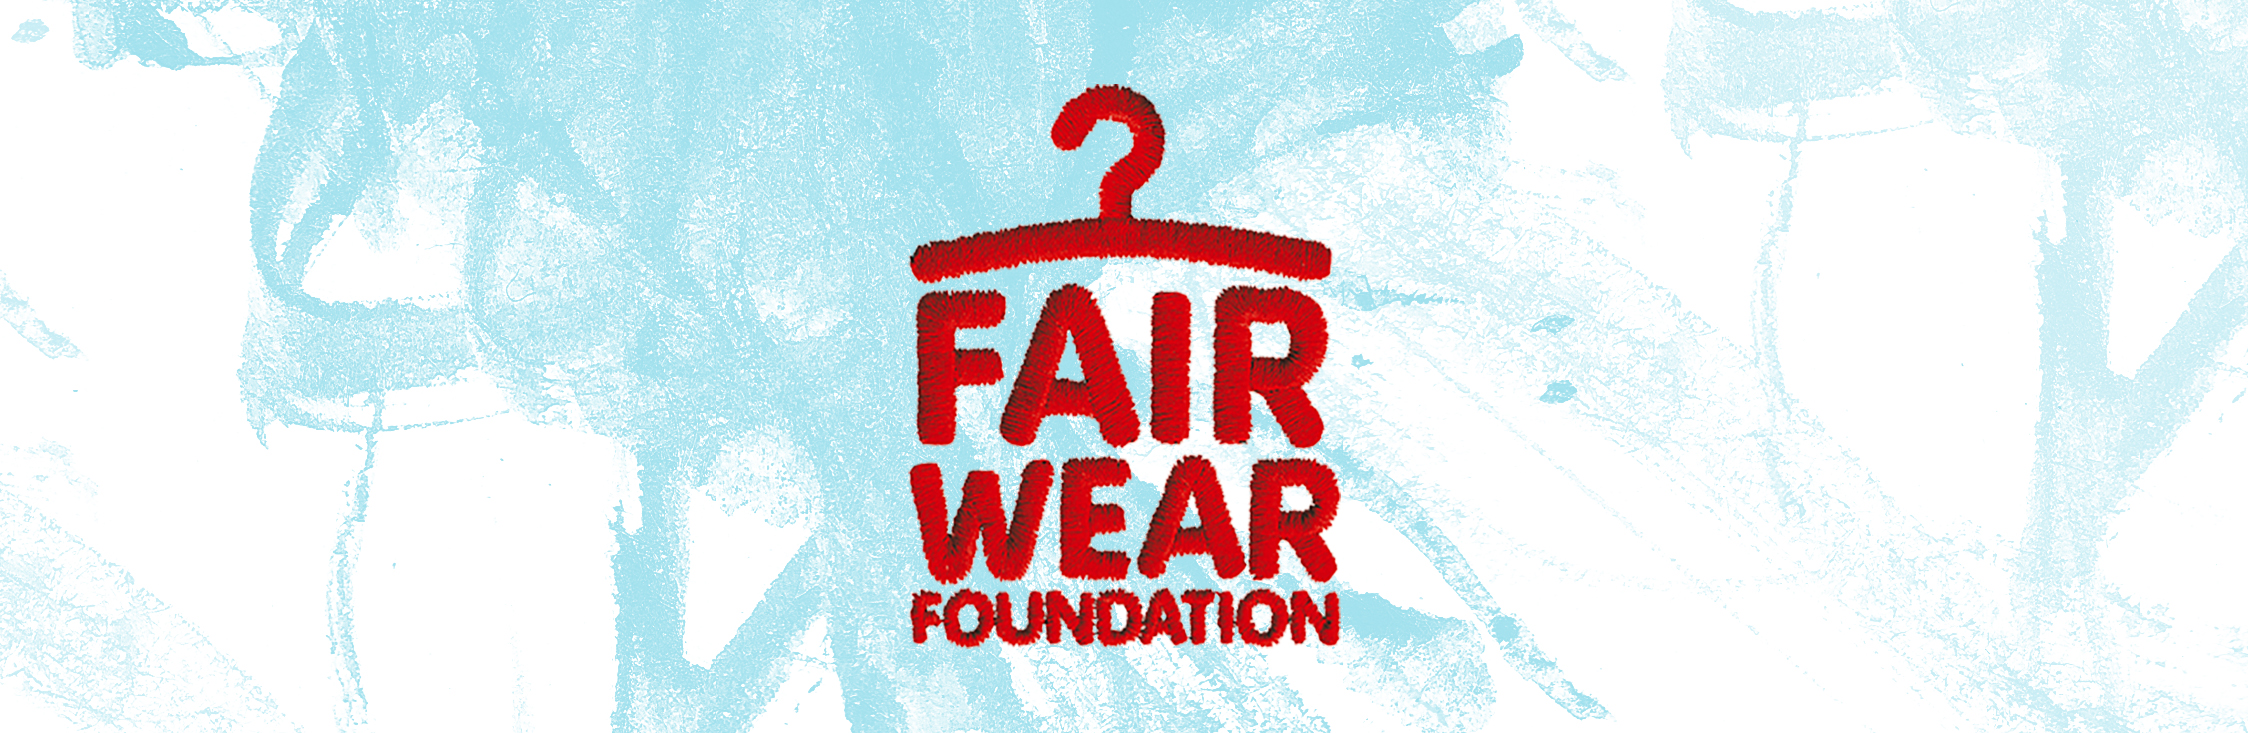 fairwearfoundationlogo.jpg